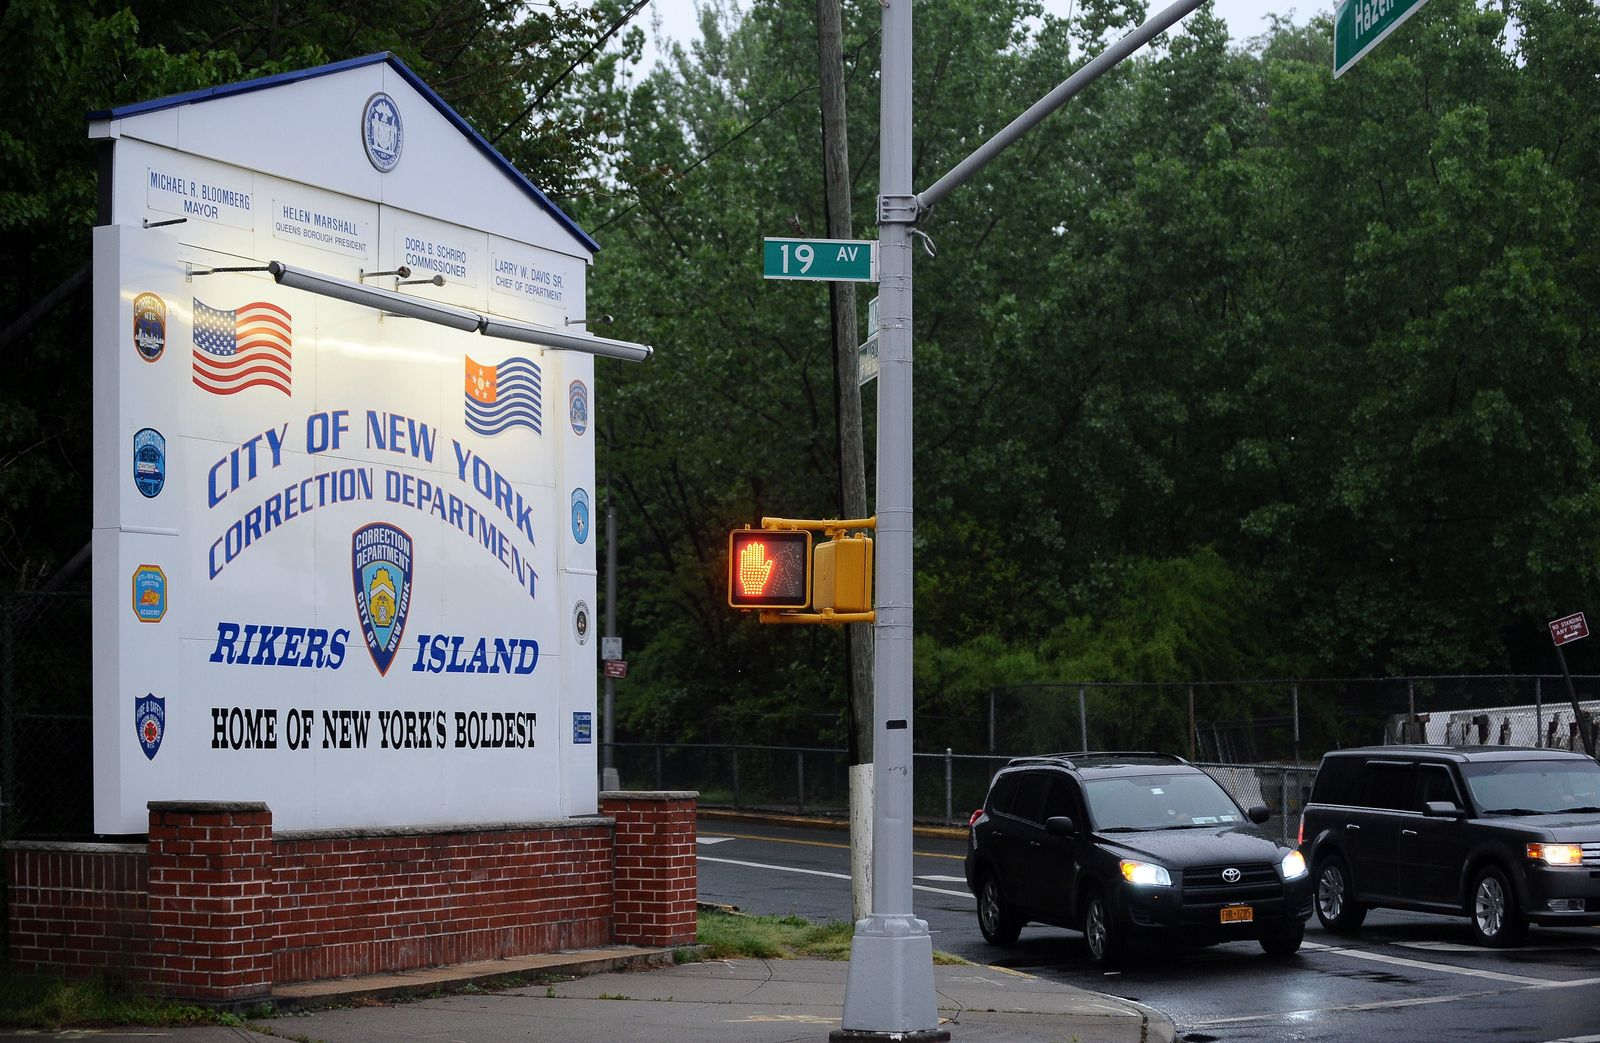 Strauss-Kahn / Rikers Island